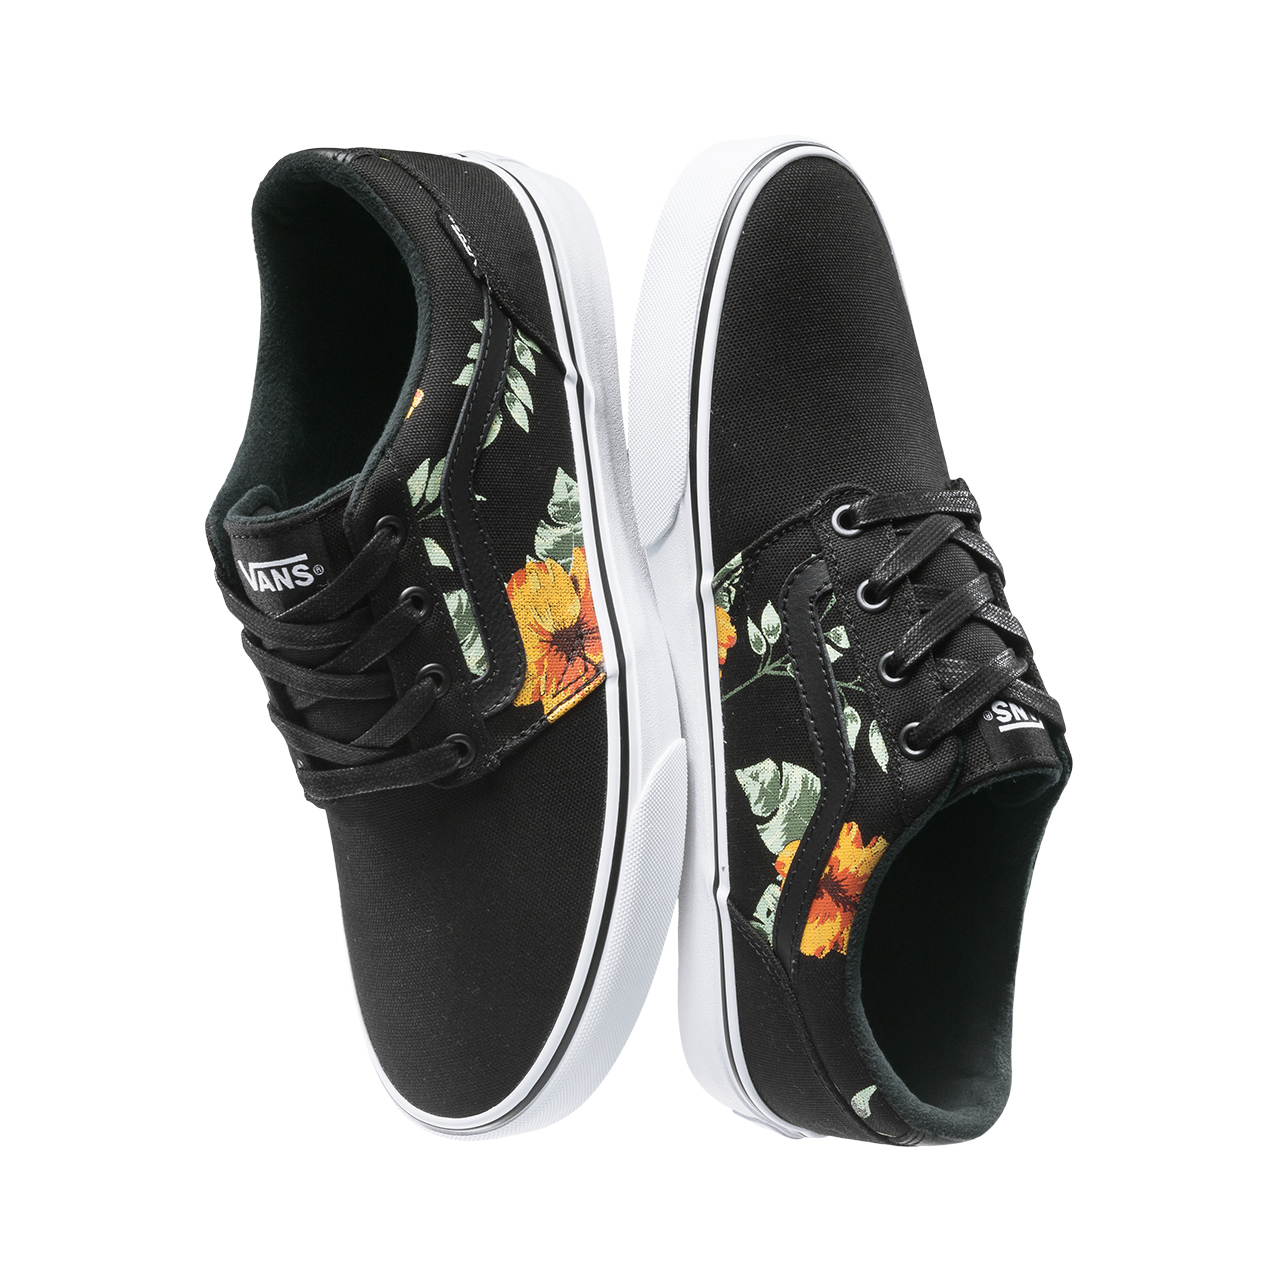 75b51308e8a2 Genuine Vans Vintage Flower Sneakers Low top Trainers Men Sports  Skateboarding Shoes Breathable Classic Canvas Vans Shoes Men-in  Skateboarding from Sports ...